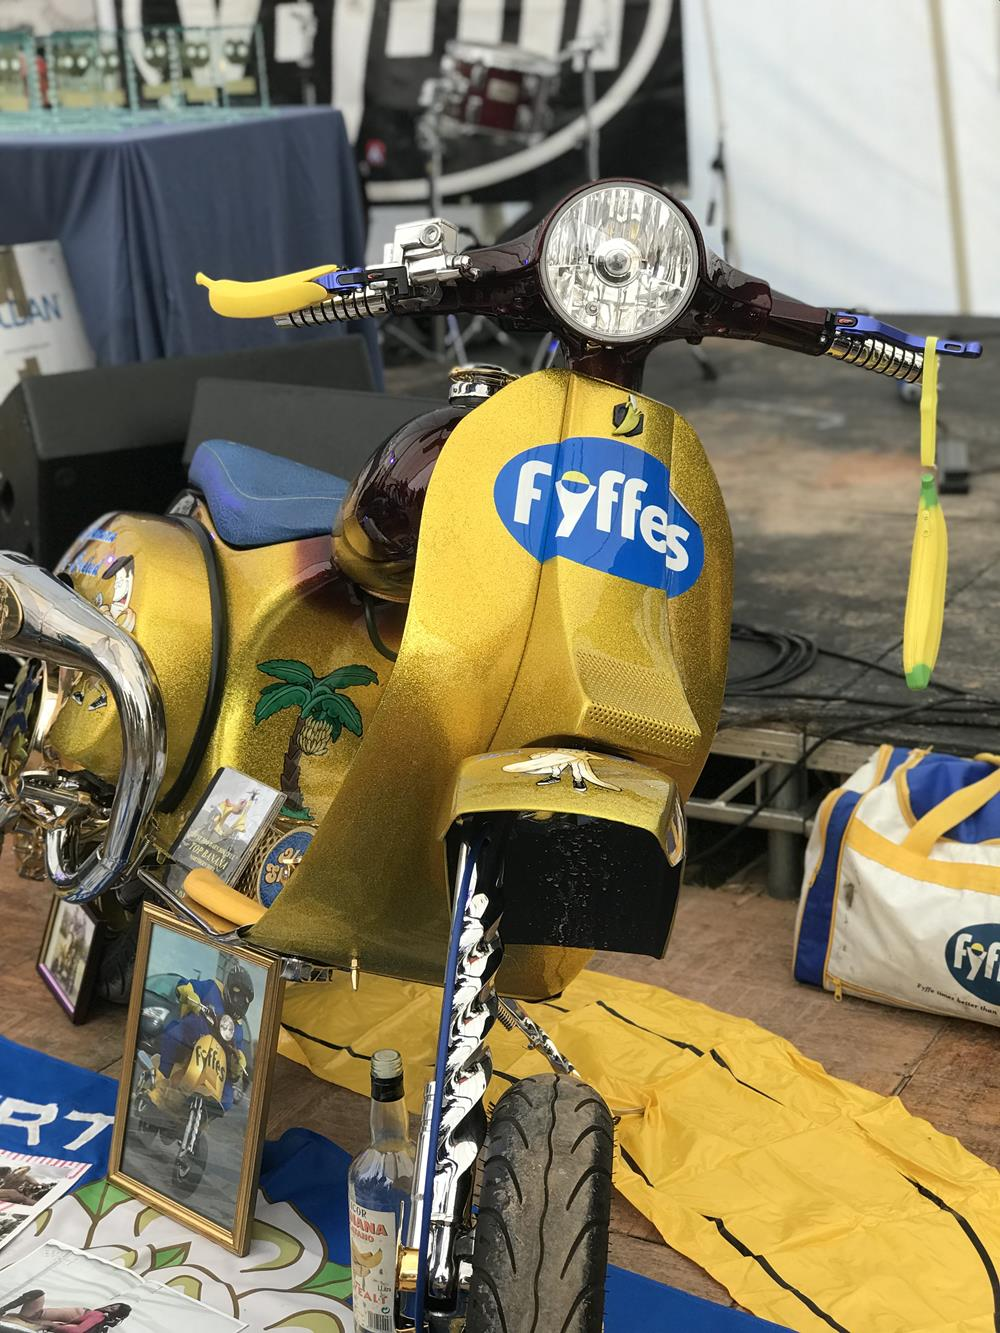 Fyffes mural on the front of the yellow scooter called Top Banana